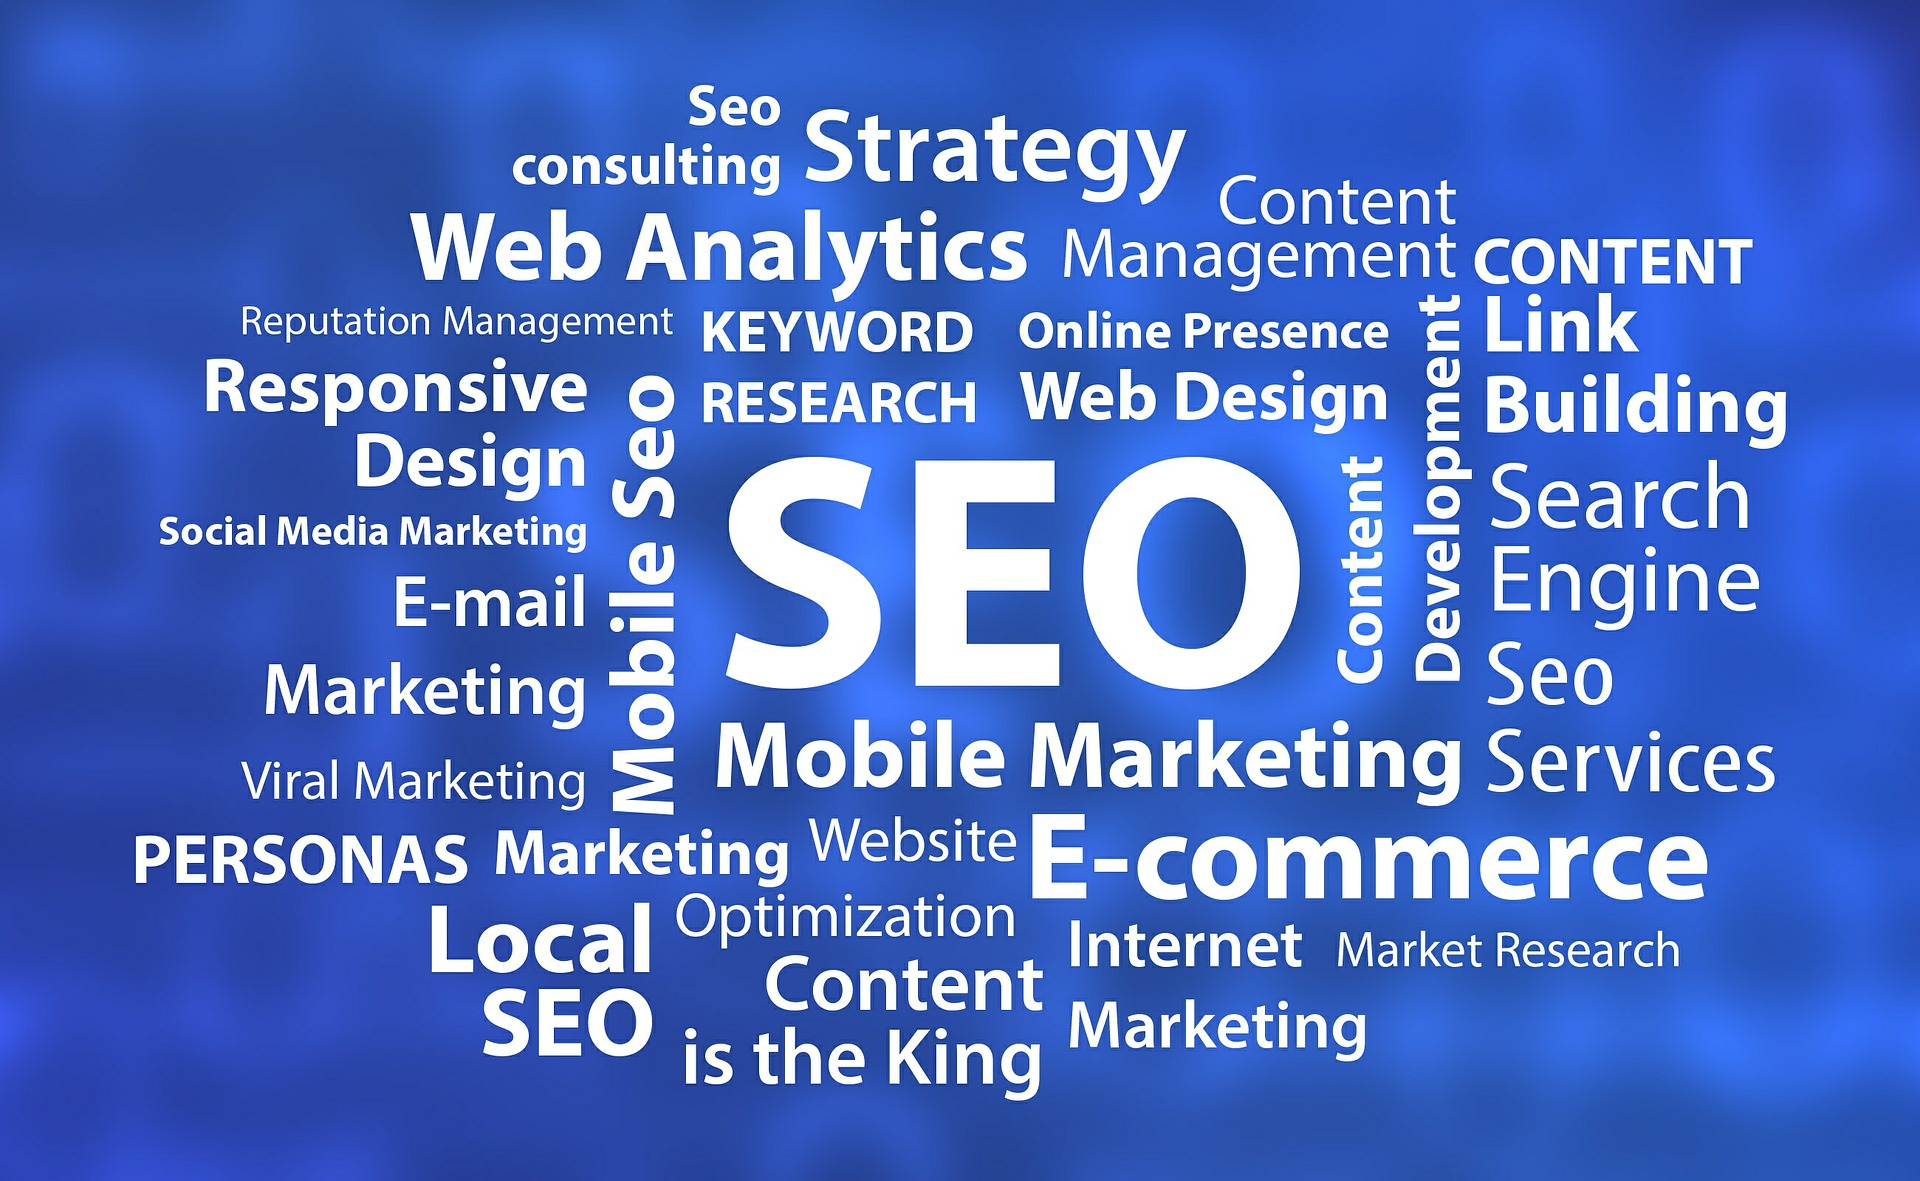 seo, search engine optimization, inbound marketing, estrategia de contenidos, marketing digital